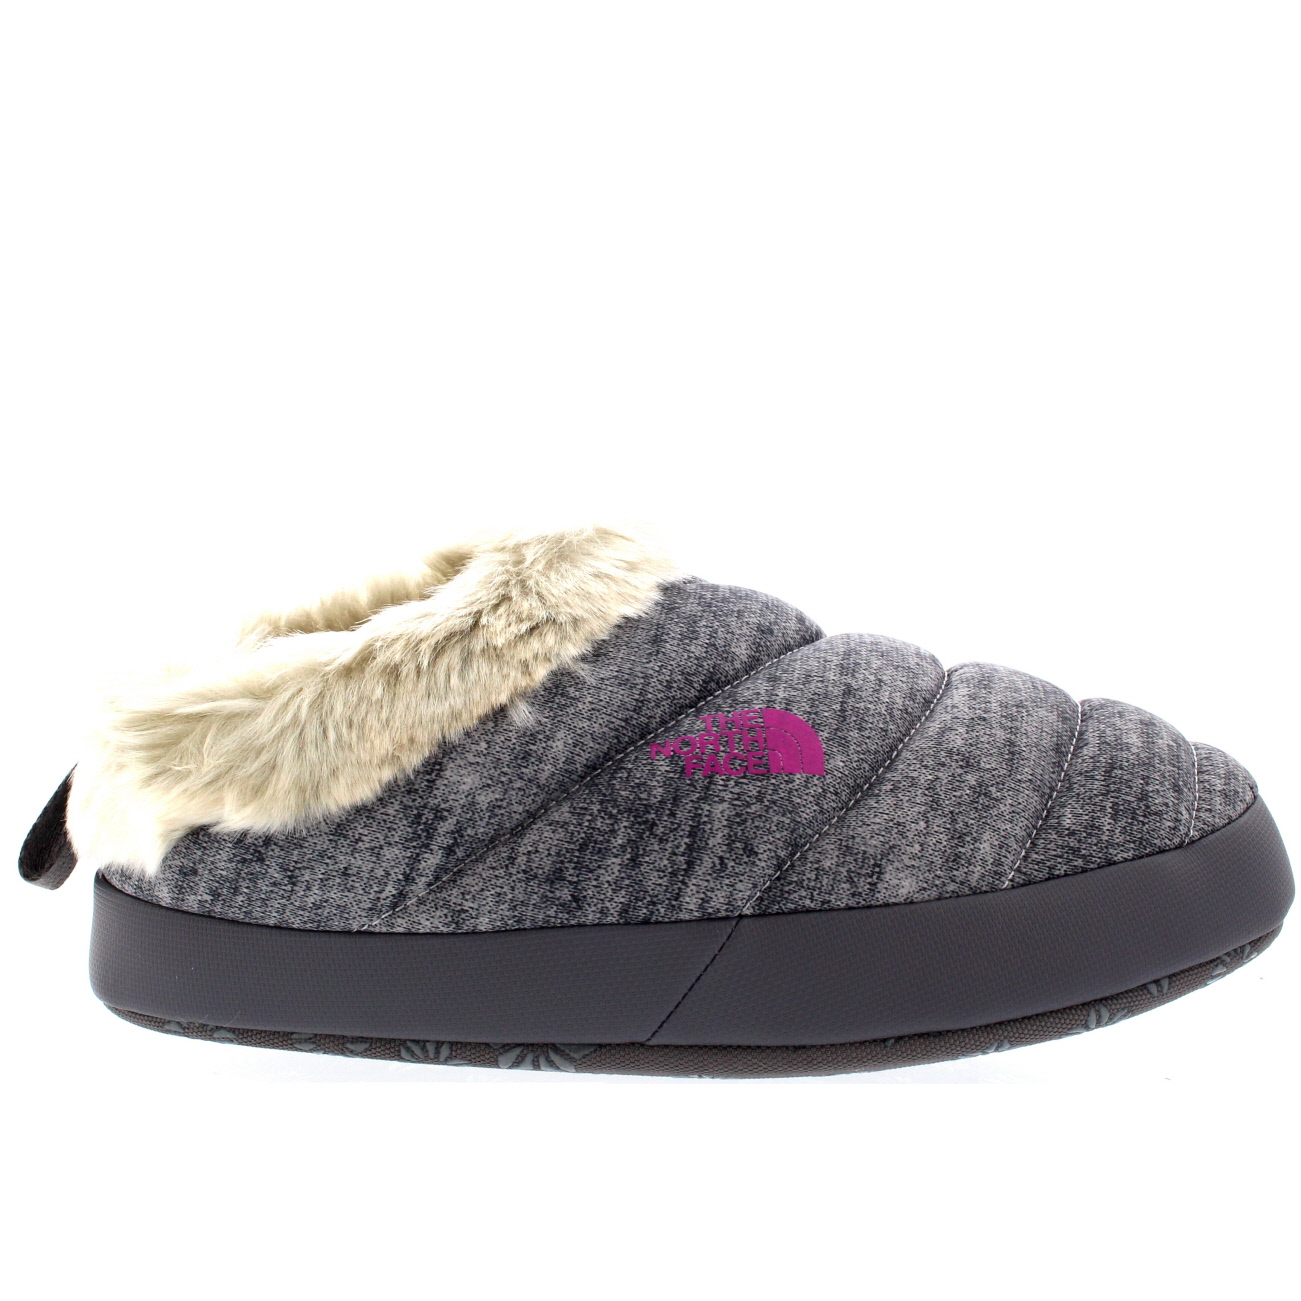 Womens-The-North-Face-Nst-Tent-Mule-2-  sc 1 st  eBay & Womens The North Face Nst Tent Mule 2 Winter Faux Fur Warm Mule ...